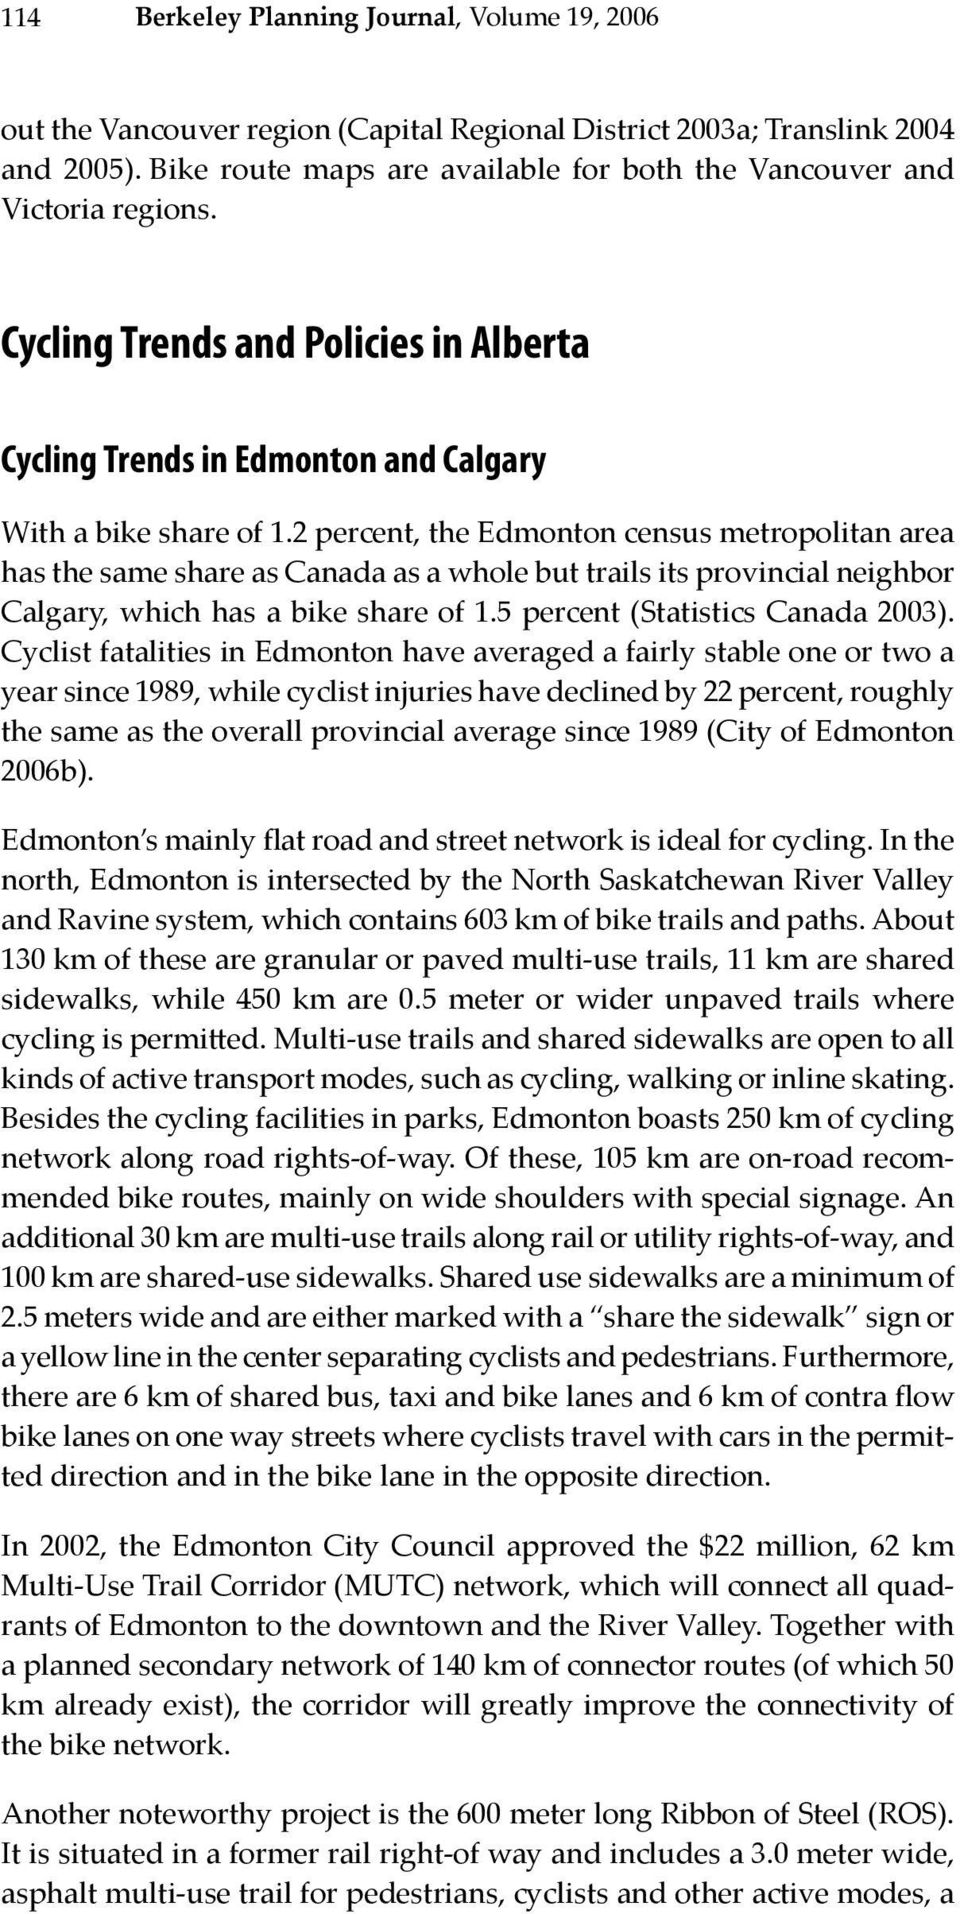 2 percent, the Edmonton census metropolitan area has the same share as Canada as a whole but trails its provincial neighbor Calgary, which has a bike share of 1.5 percent (Statistics Canada 2003).